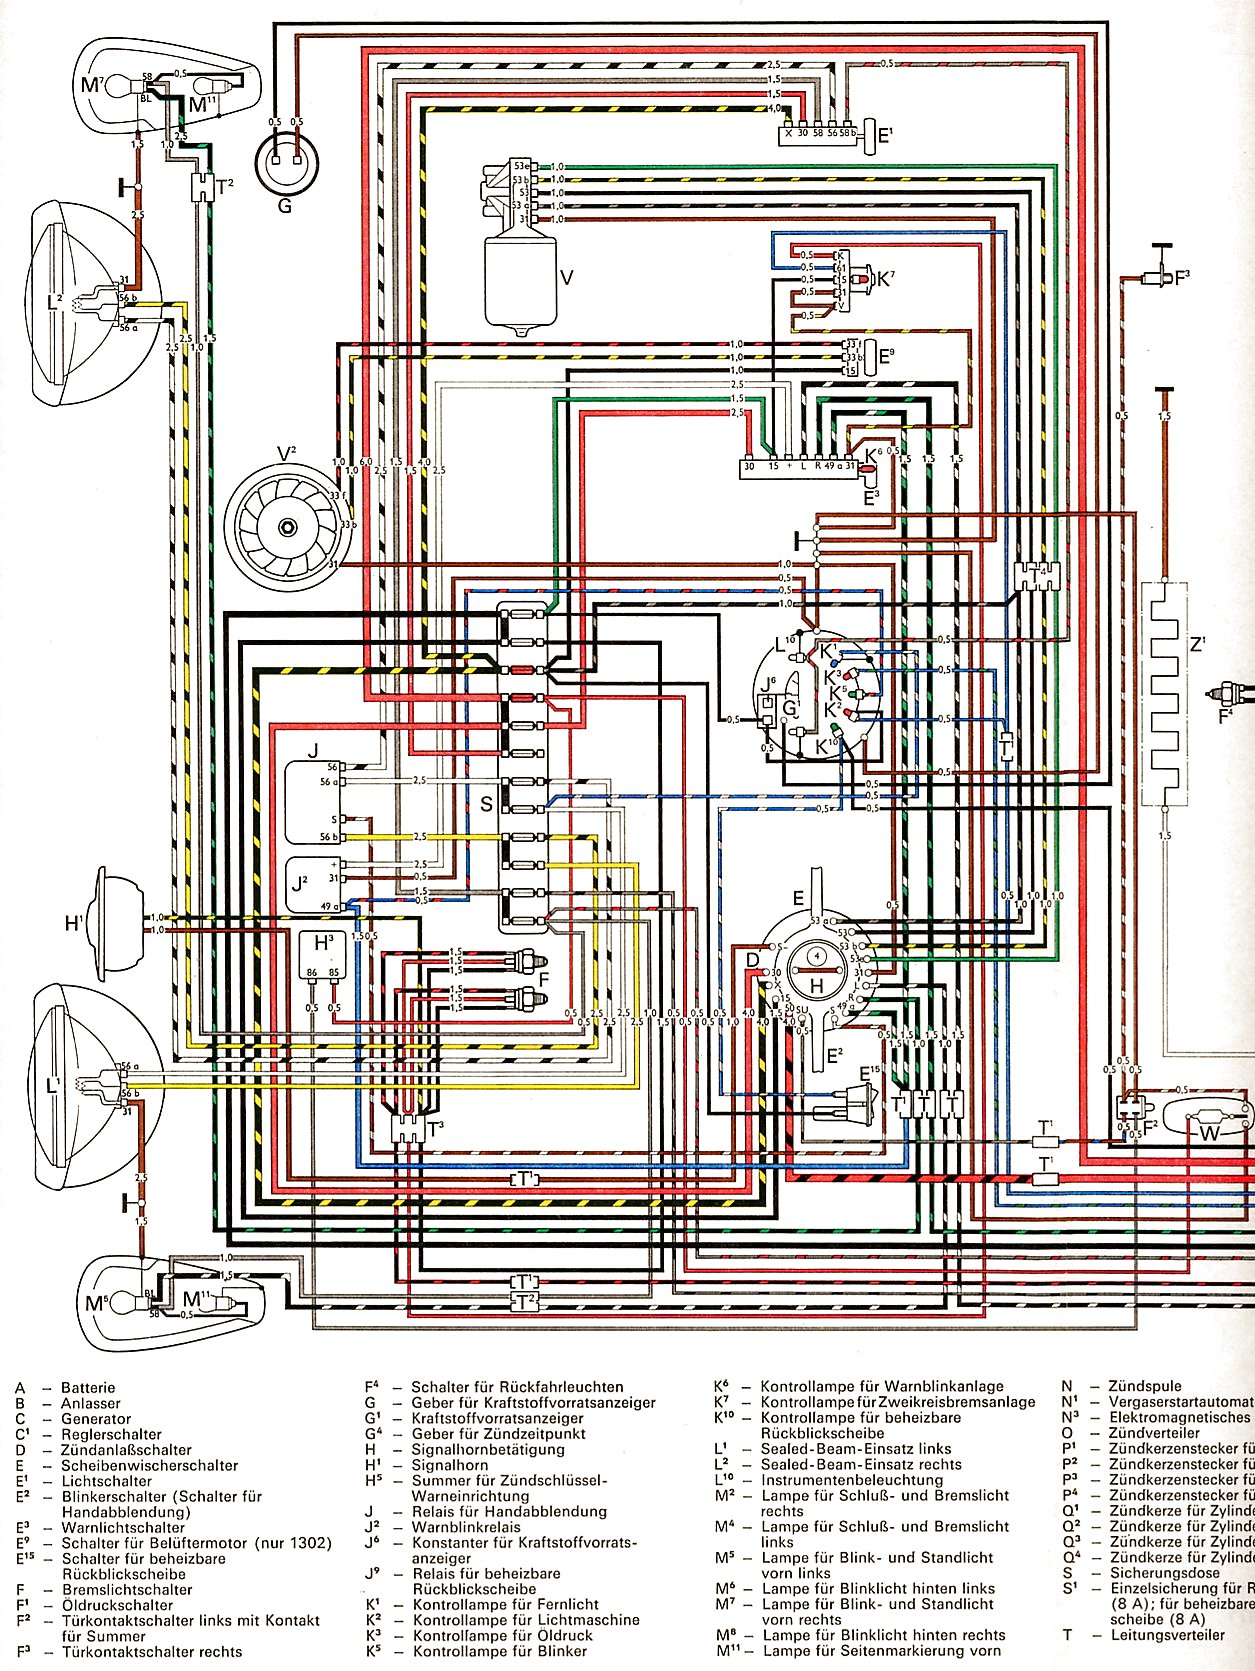 1300_and_1302_USA_from_August_1971 1 wiring diagram shoptalkforums com 1972 beetle wiring diagram at mifinder.co